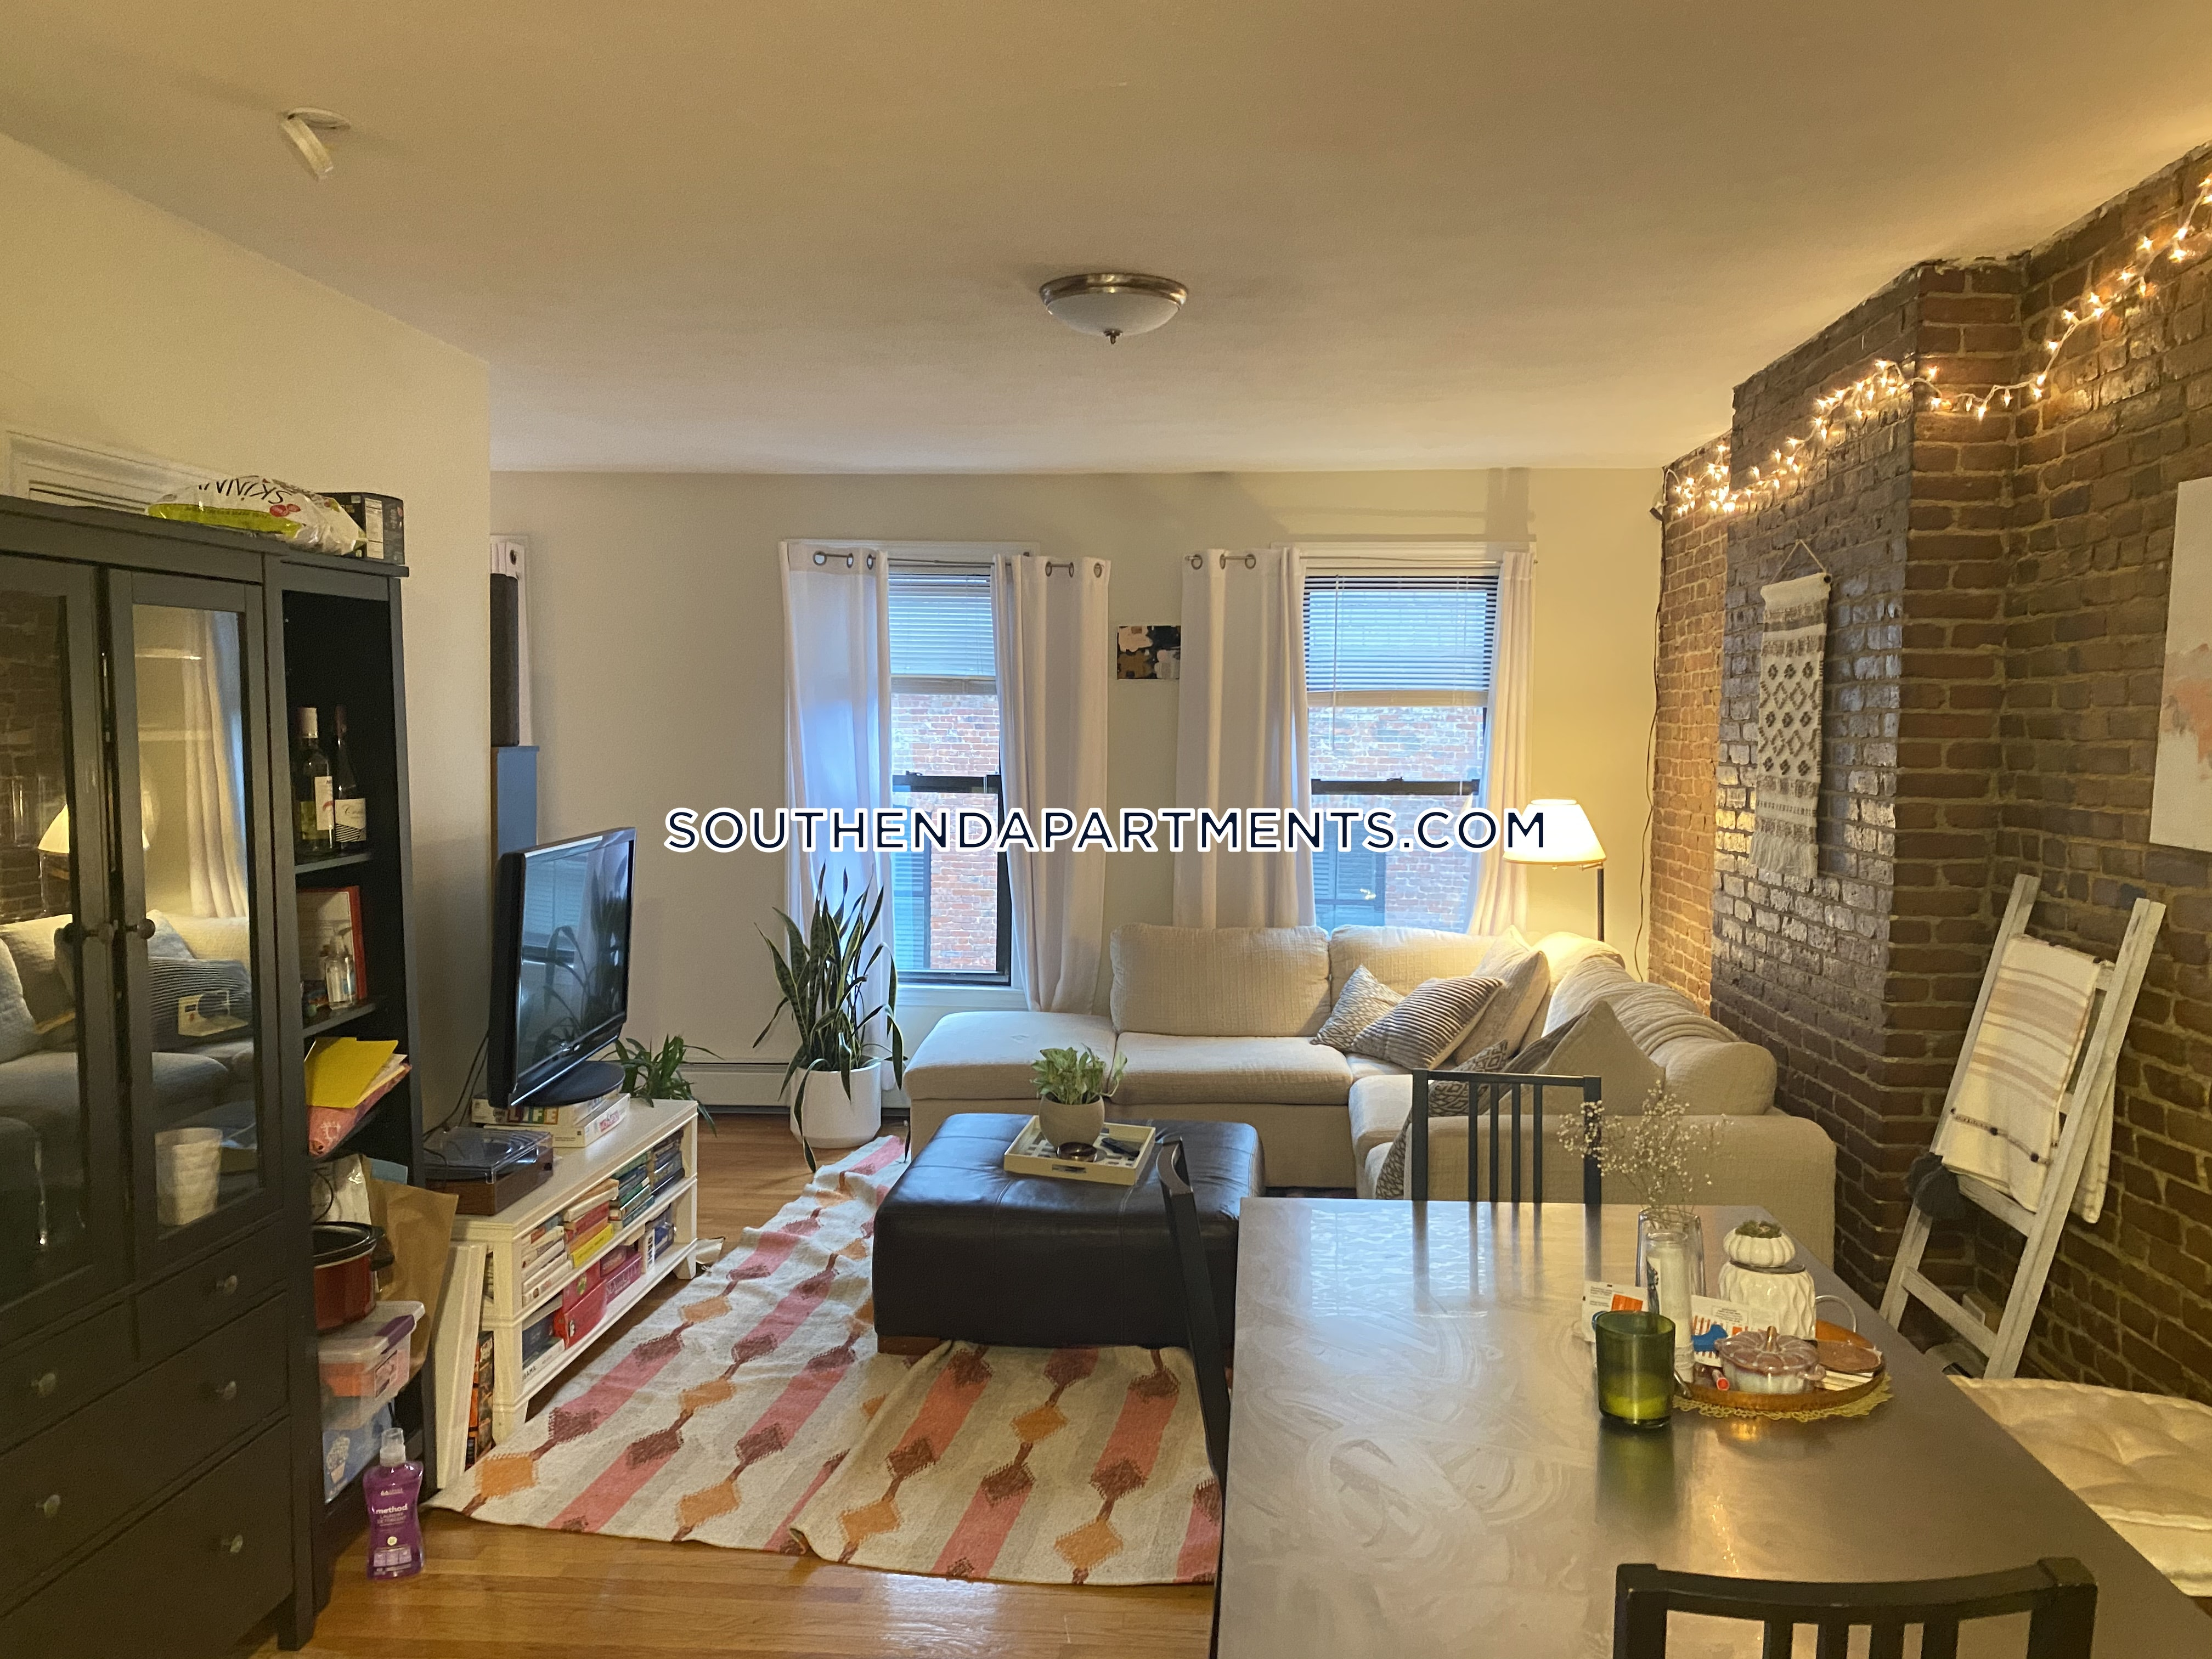 Newton Apartments South End Apartment For Rent 3 Bedrooms 1 Bath Boston 3 250 No Fee